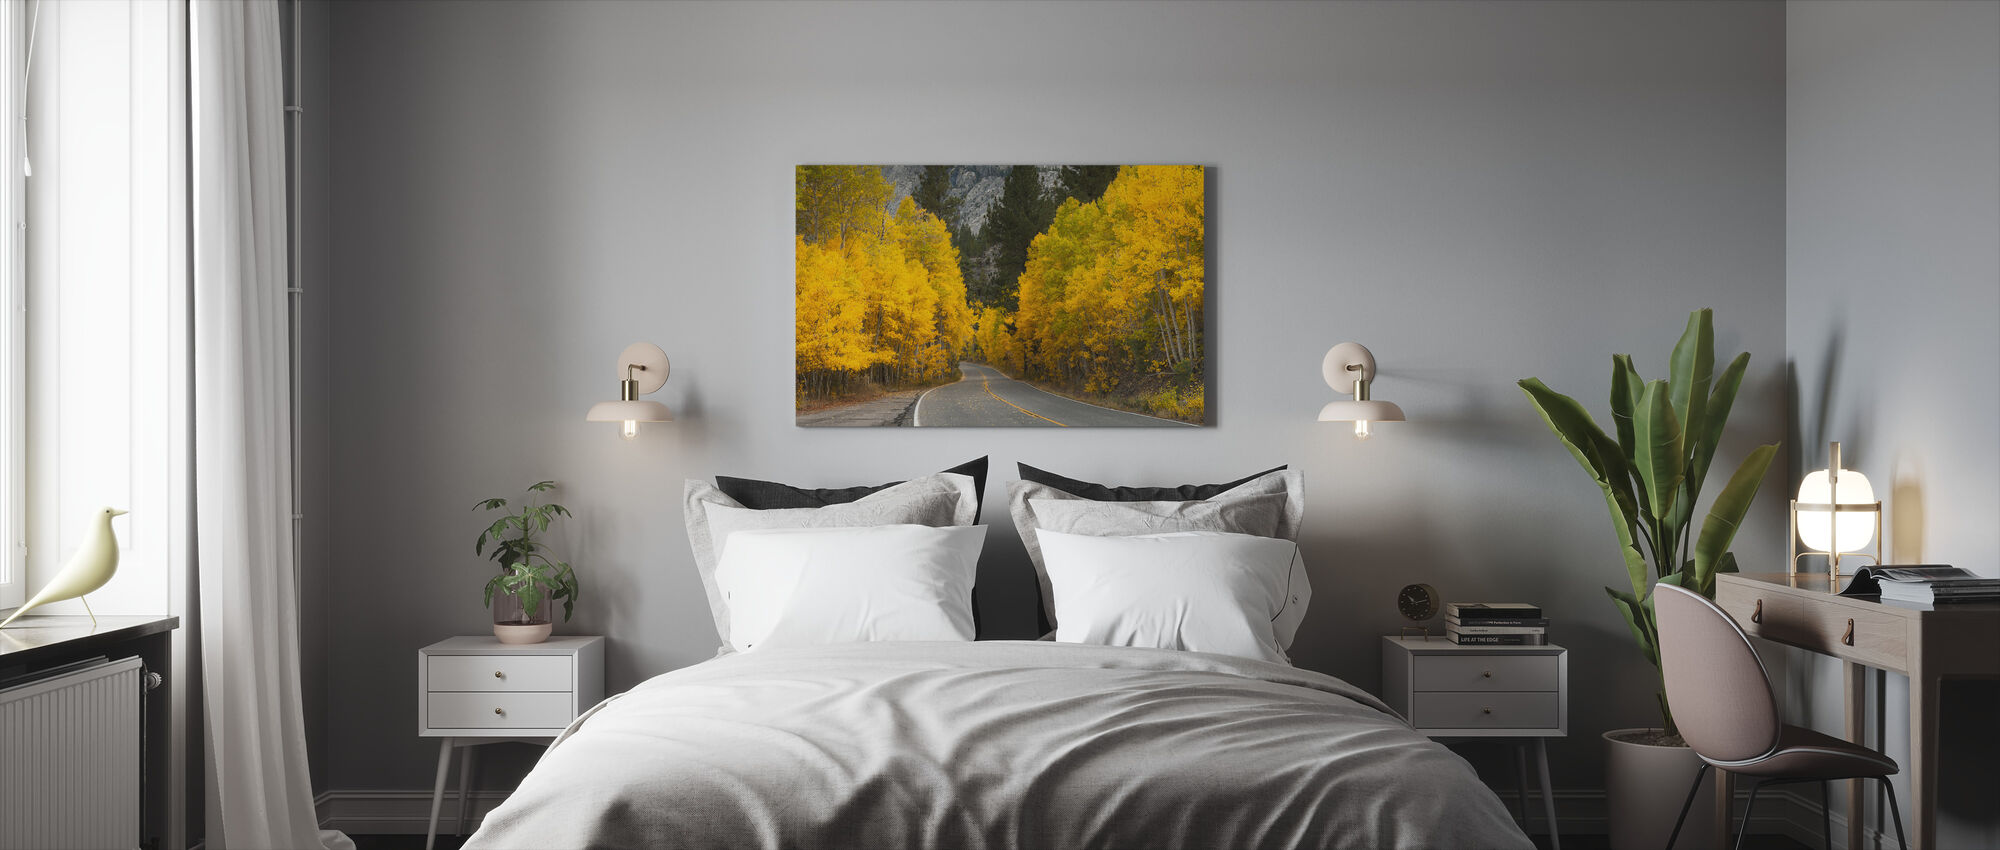 Eastern Sierra Autumn Landscape - Canvas print - Bedroom